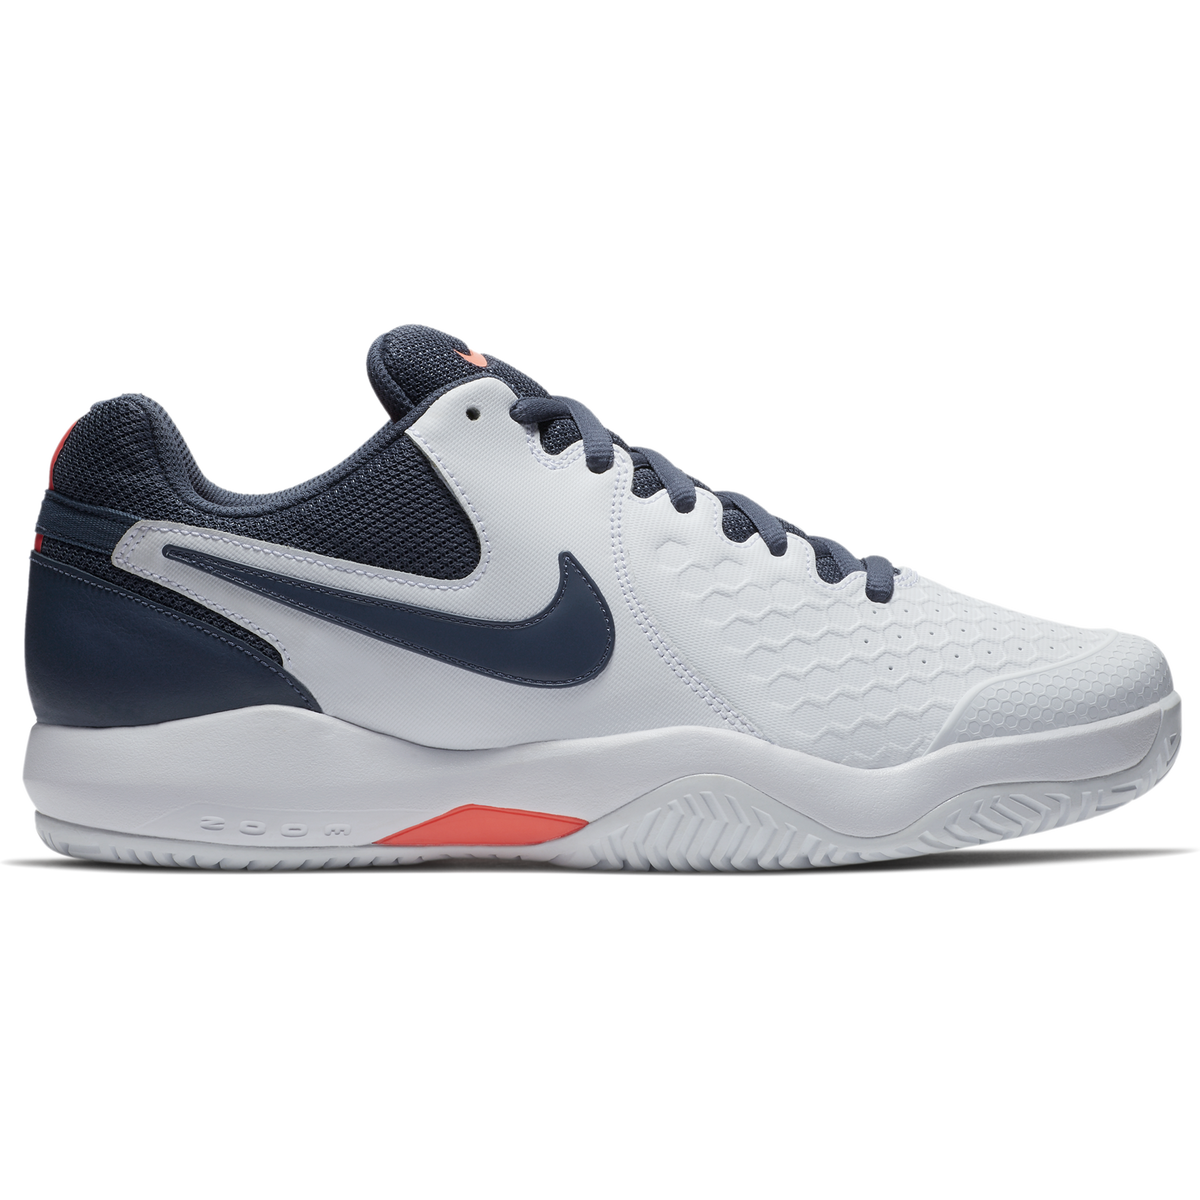 e4c47a4fb42c Nike Air Zoom Resistance Men s Tennis Shoe - White Blue